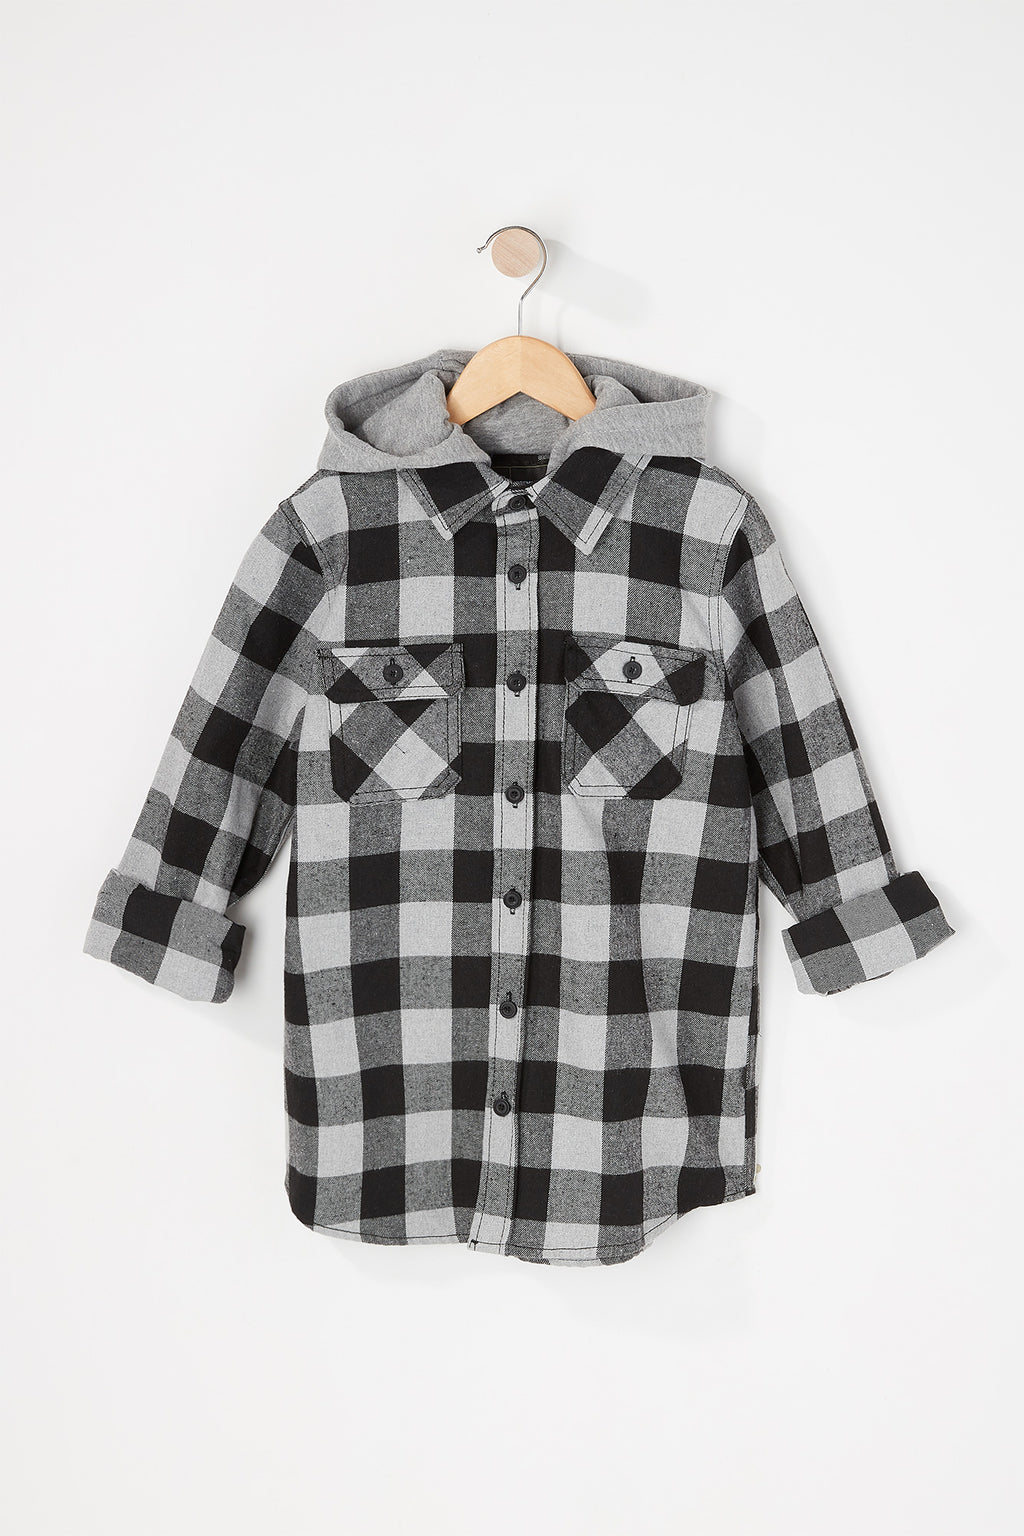 West49 Boys Buffalo Hooded Button-Up Shirt